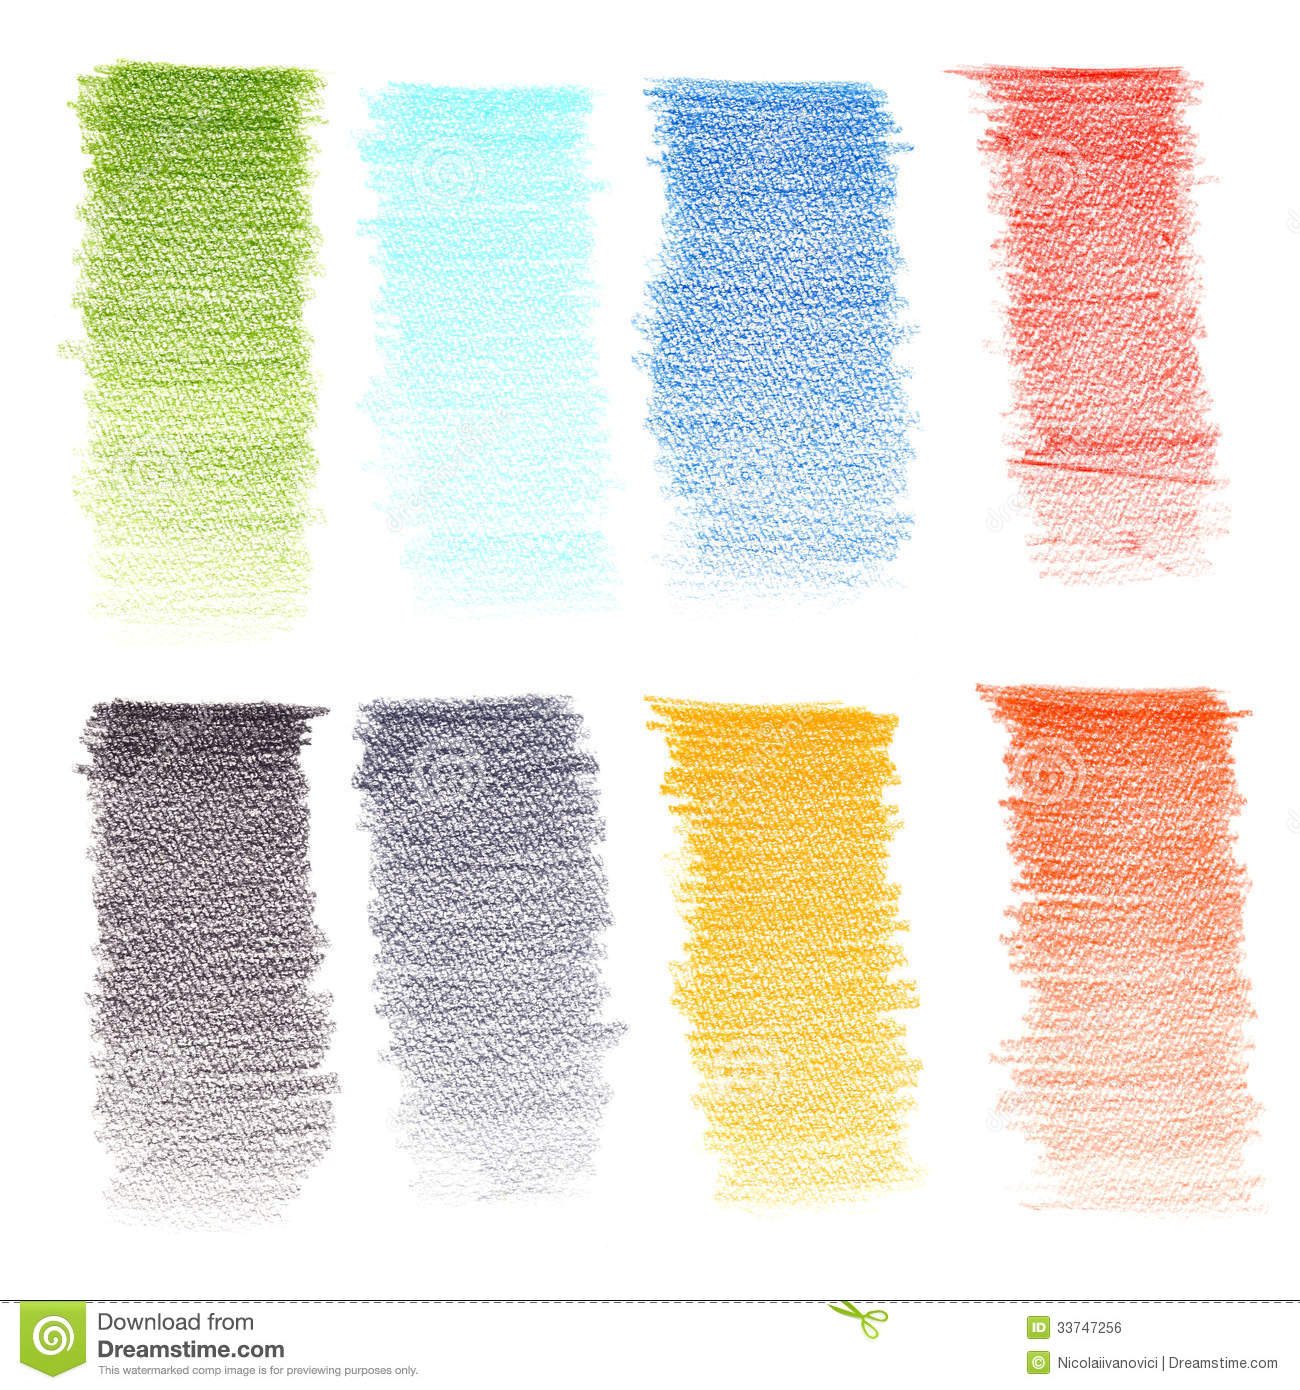 Color pencil texture stock illustration. Illustration of ...